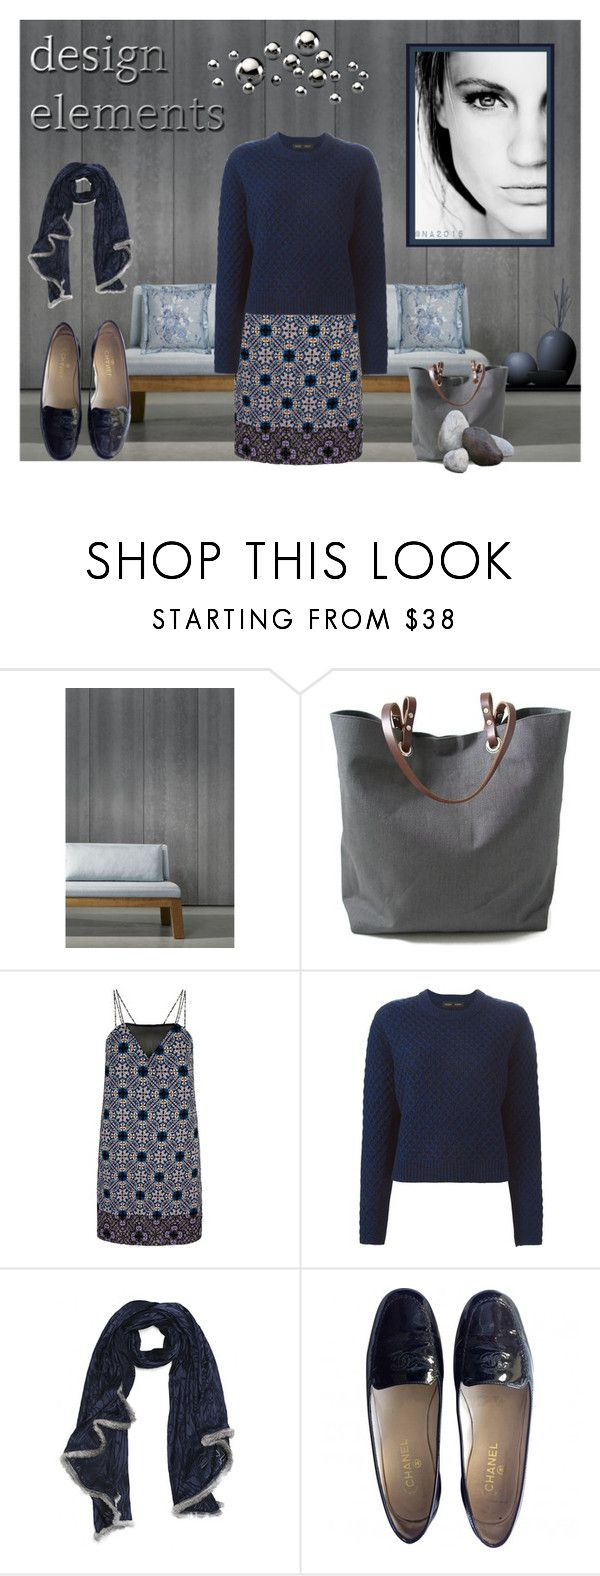 """ELEMENTS"" by menina-ana ❤ liked on Polyvore featuring moda, NLXL, Independent Reign, Mela Loves London, Proenza Schouler, GE, Chanel e Ralph Lauren"